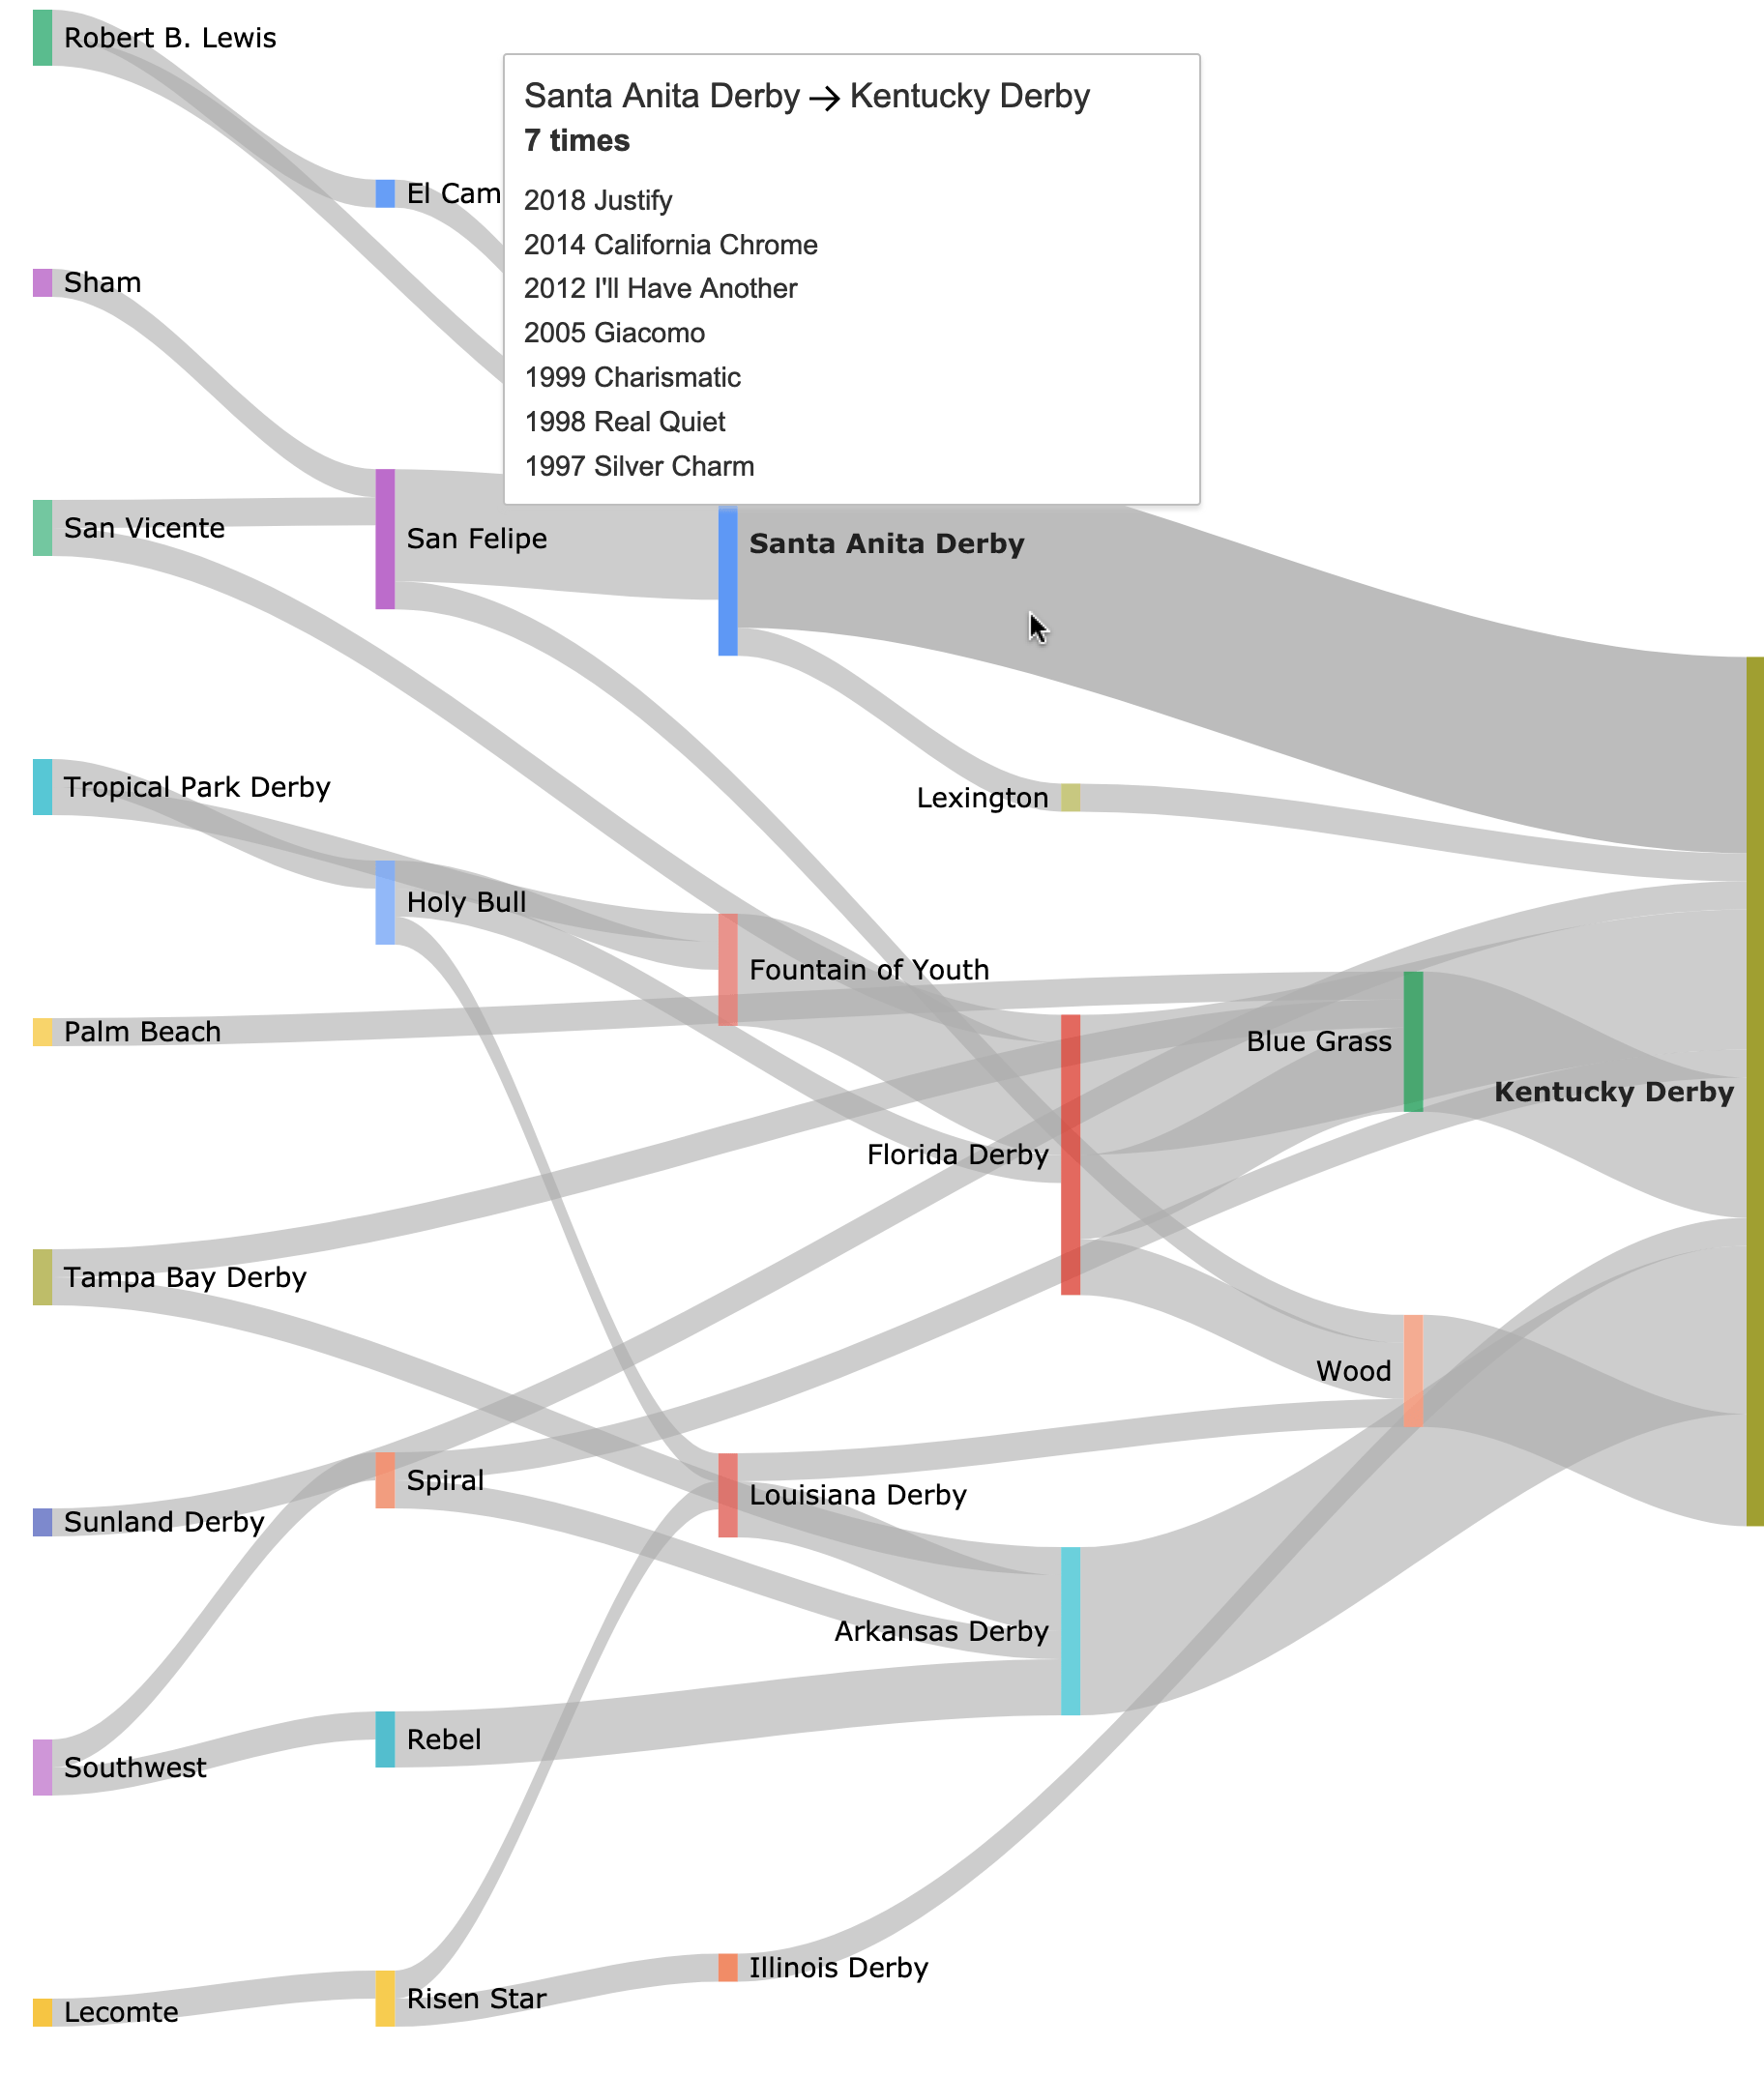 A sankey diagram how many Kentucky Derby winners passed through specific prep races.